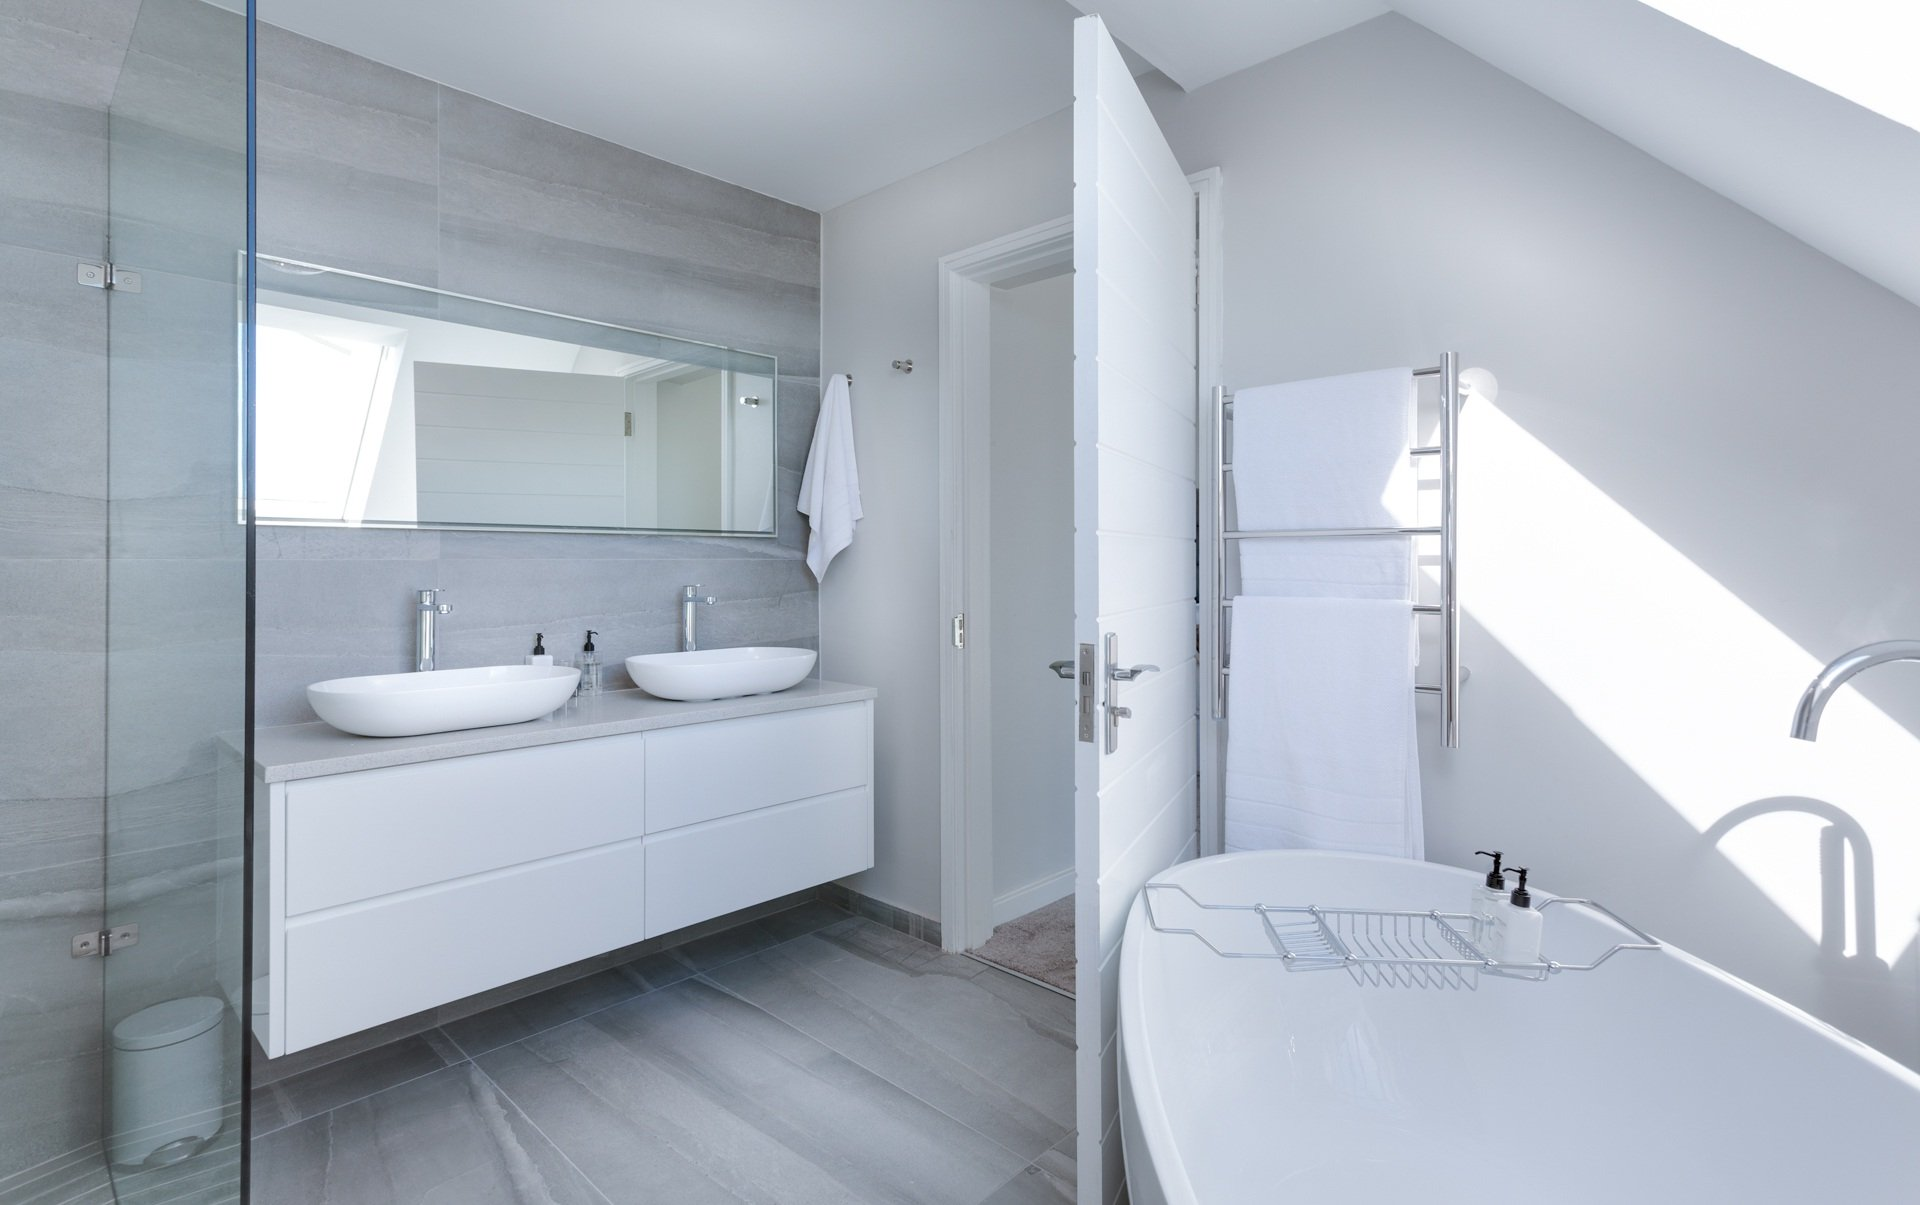 white bathroom with bath, sinks and glass shower - Noosa Plumber